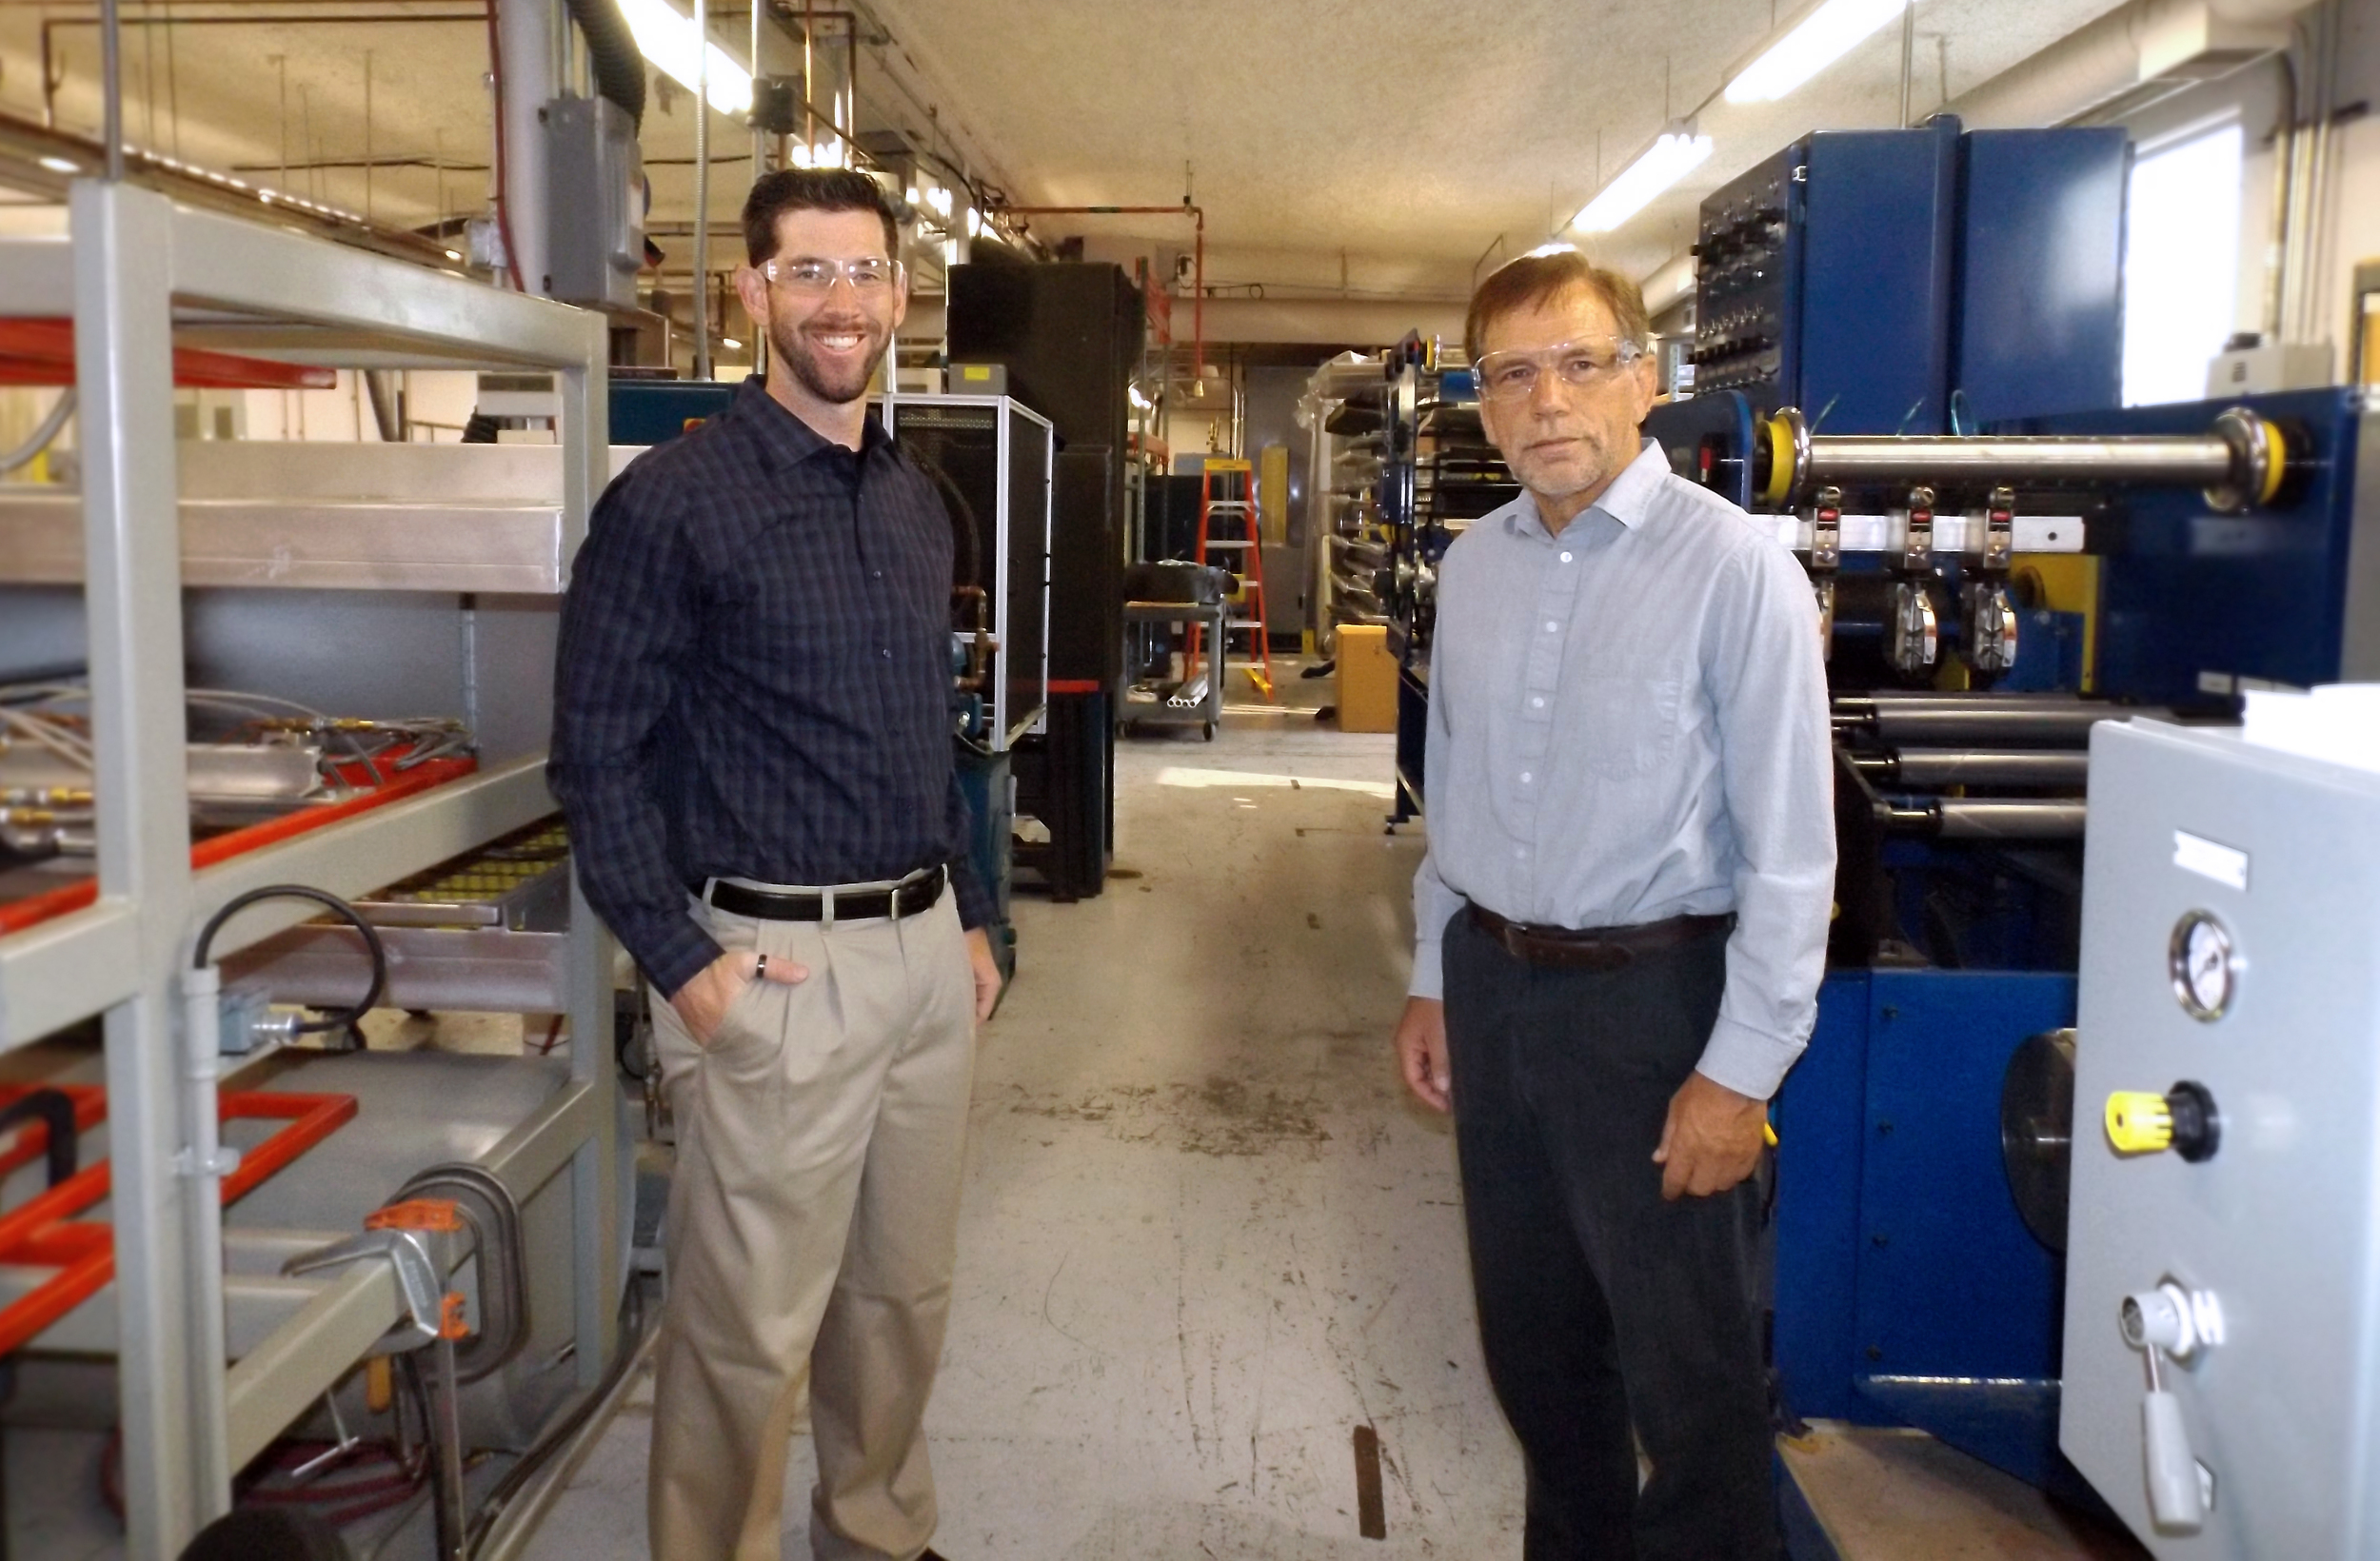 Eric Schmid (left) and Dr. David Salem (right) stand in their lab space at the CAPE Laboratory.